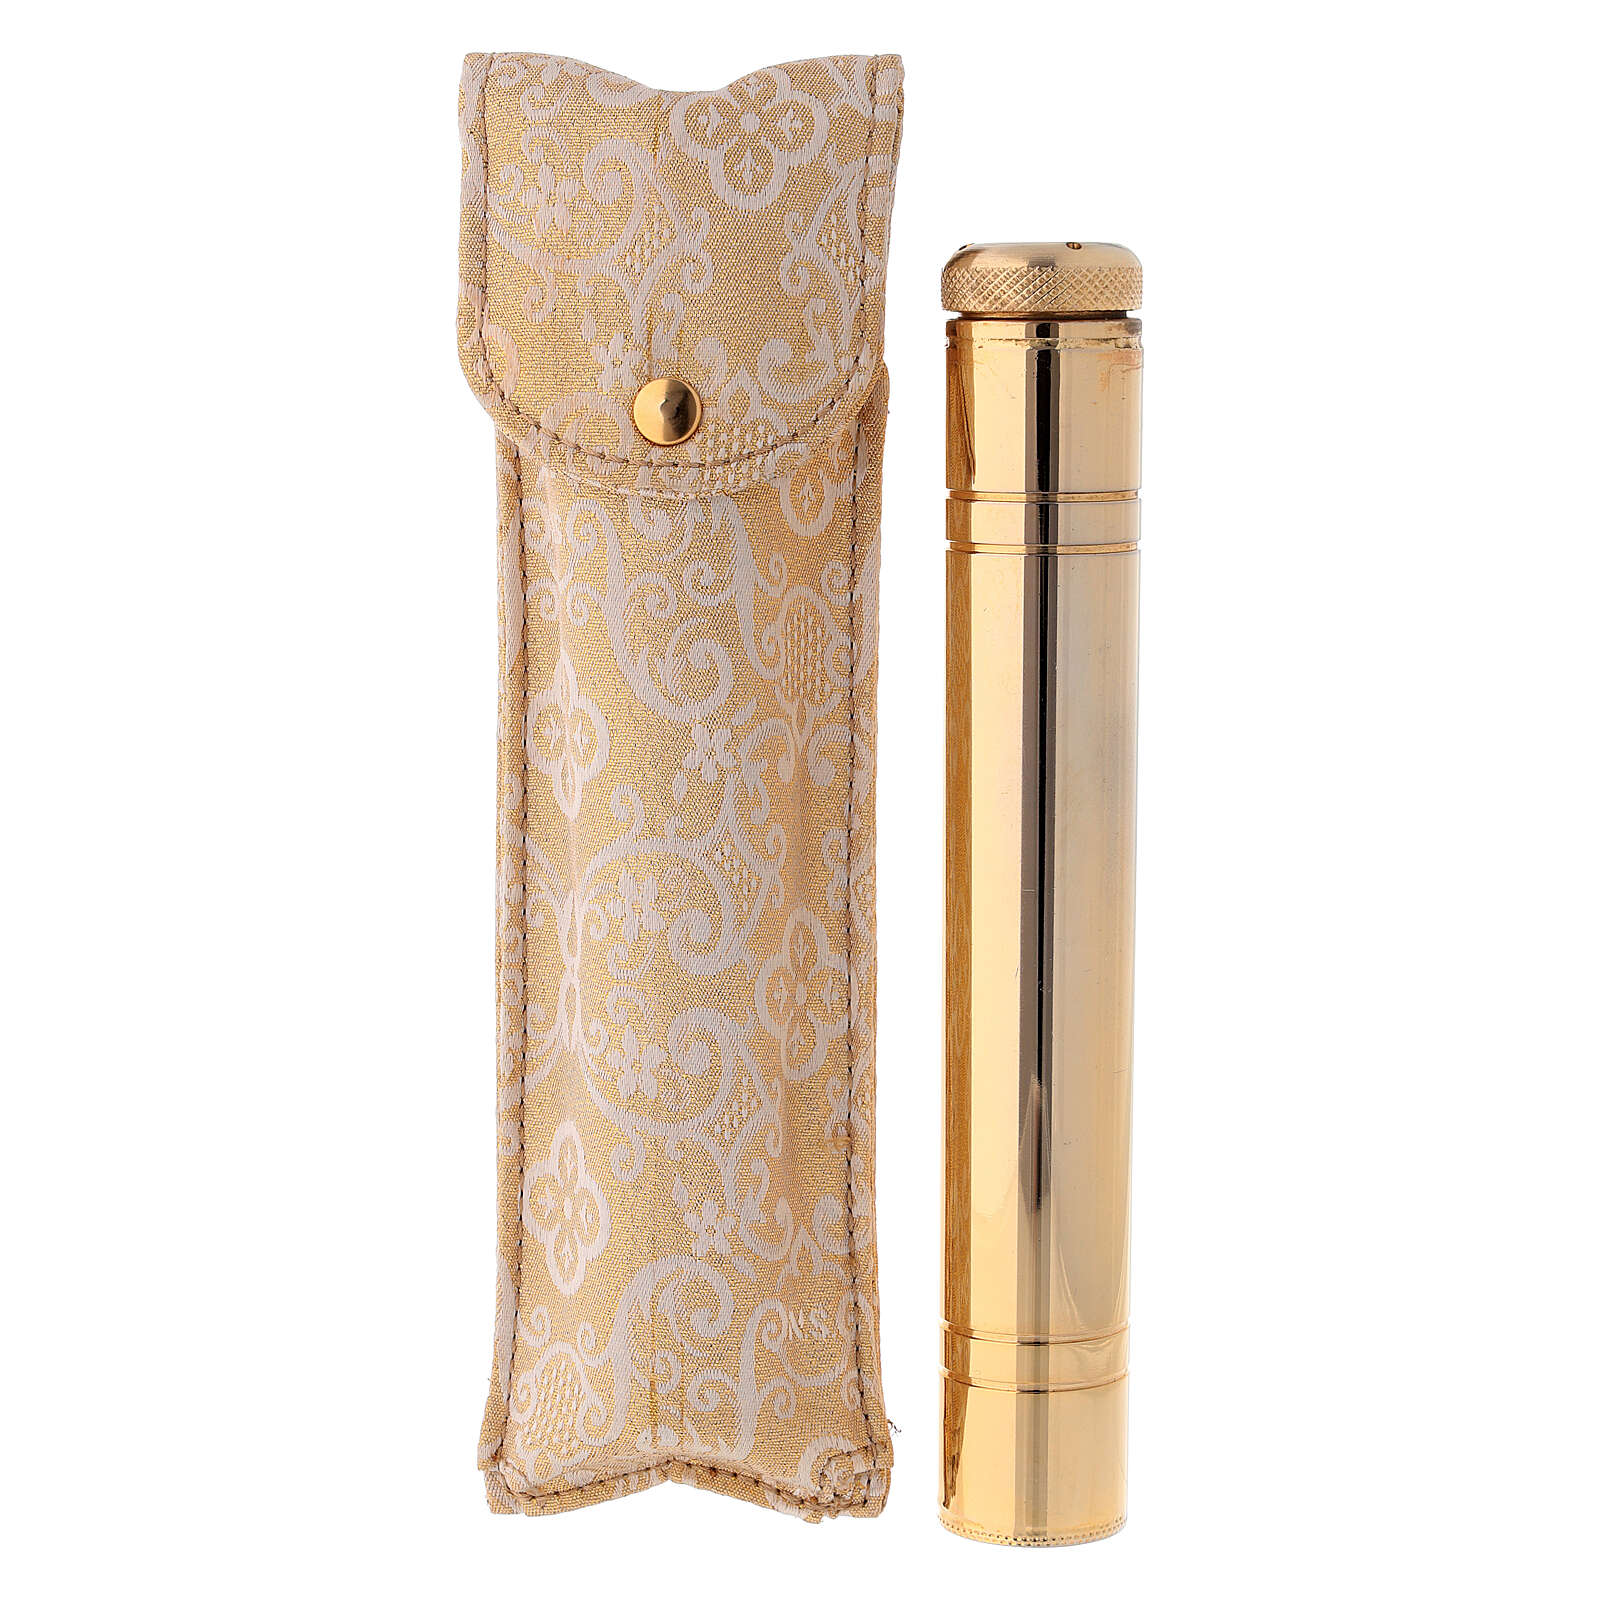 Holy water sprinkler 16 cm, in light gold with jacquard case 3